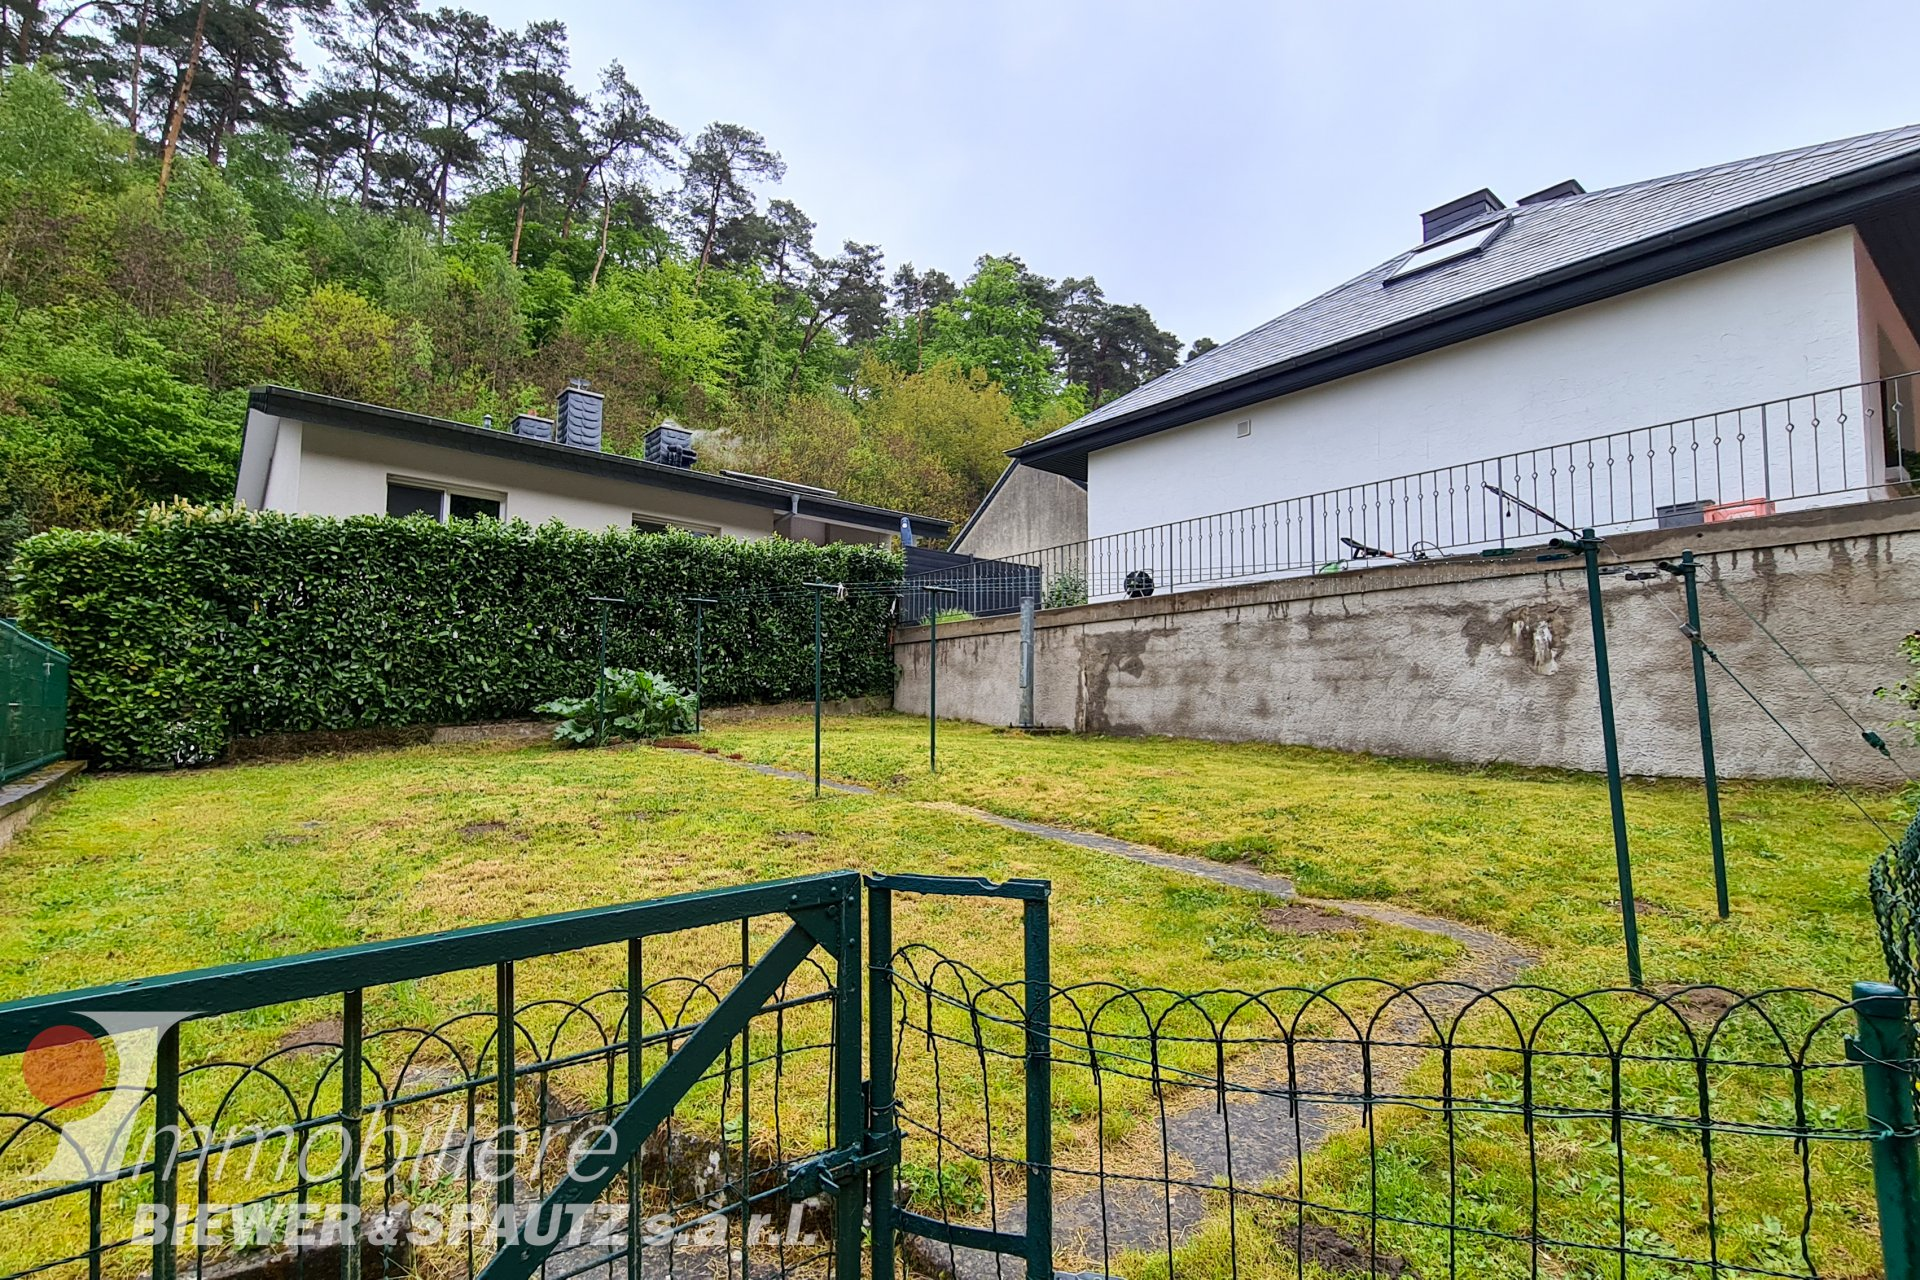 UNDER SALES AGREEMENT - house with 6 bedrooms in Bourglinster